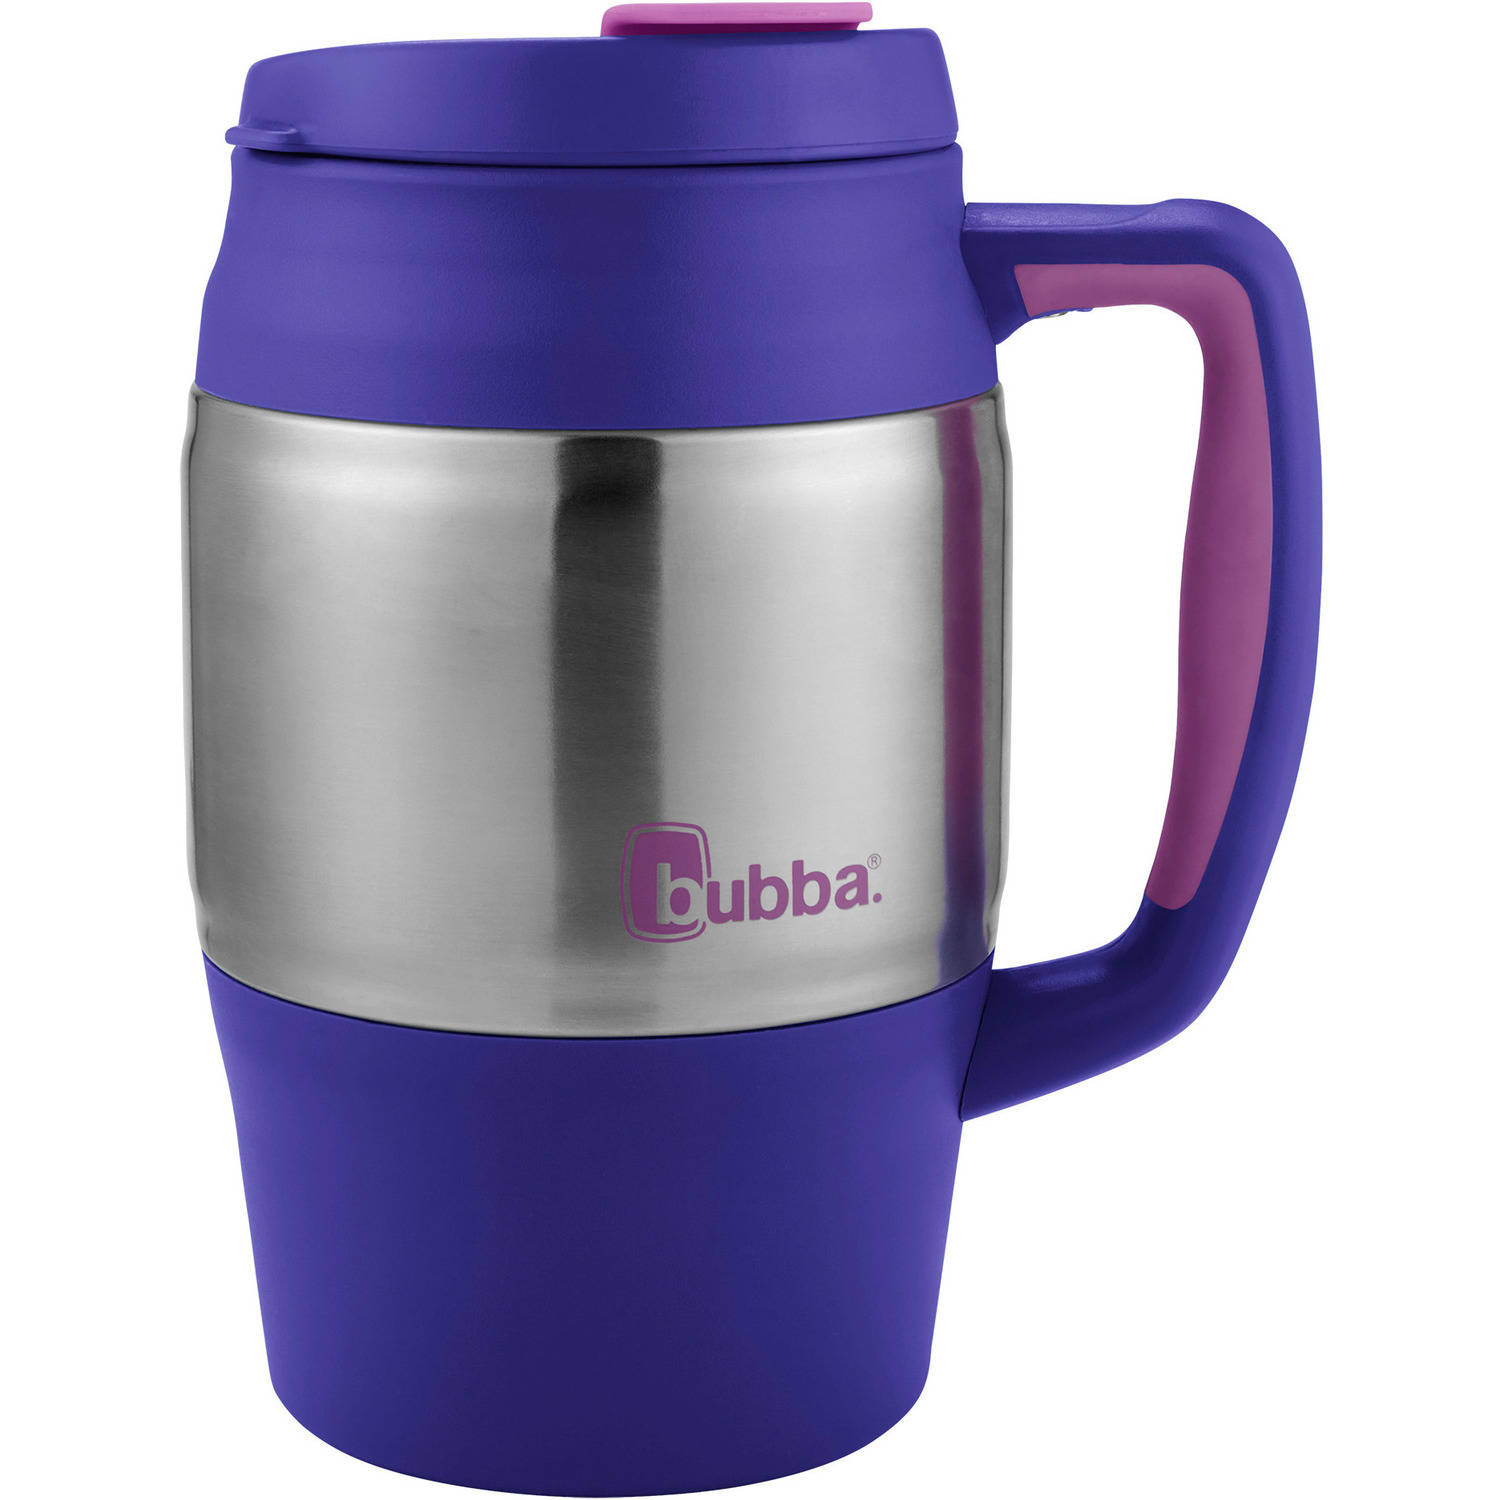 bubba Classic Insulated Travel Mug, 34 oz., Purple by BUBBA BRANDS INC